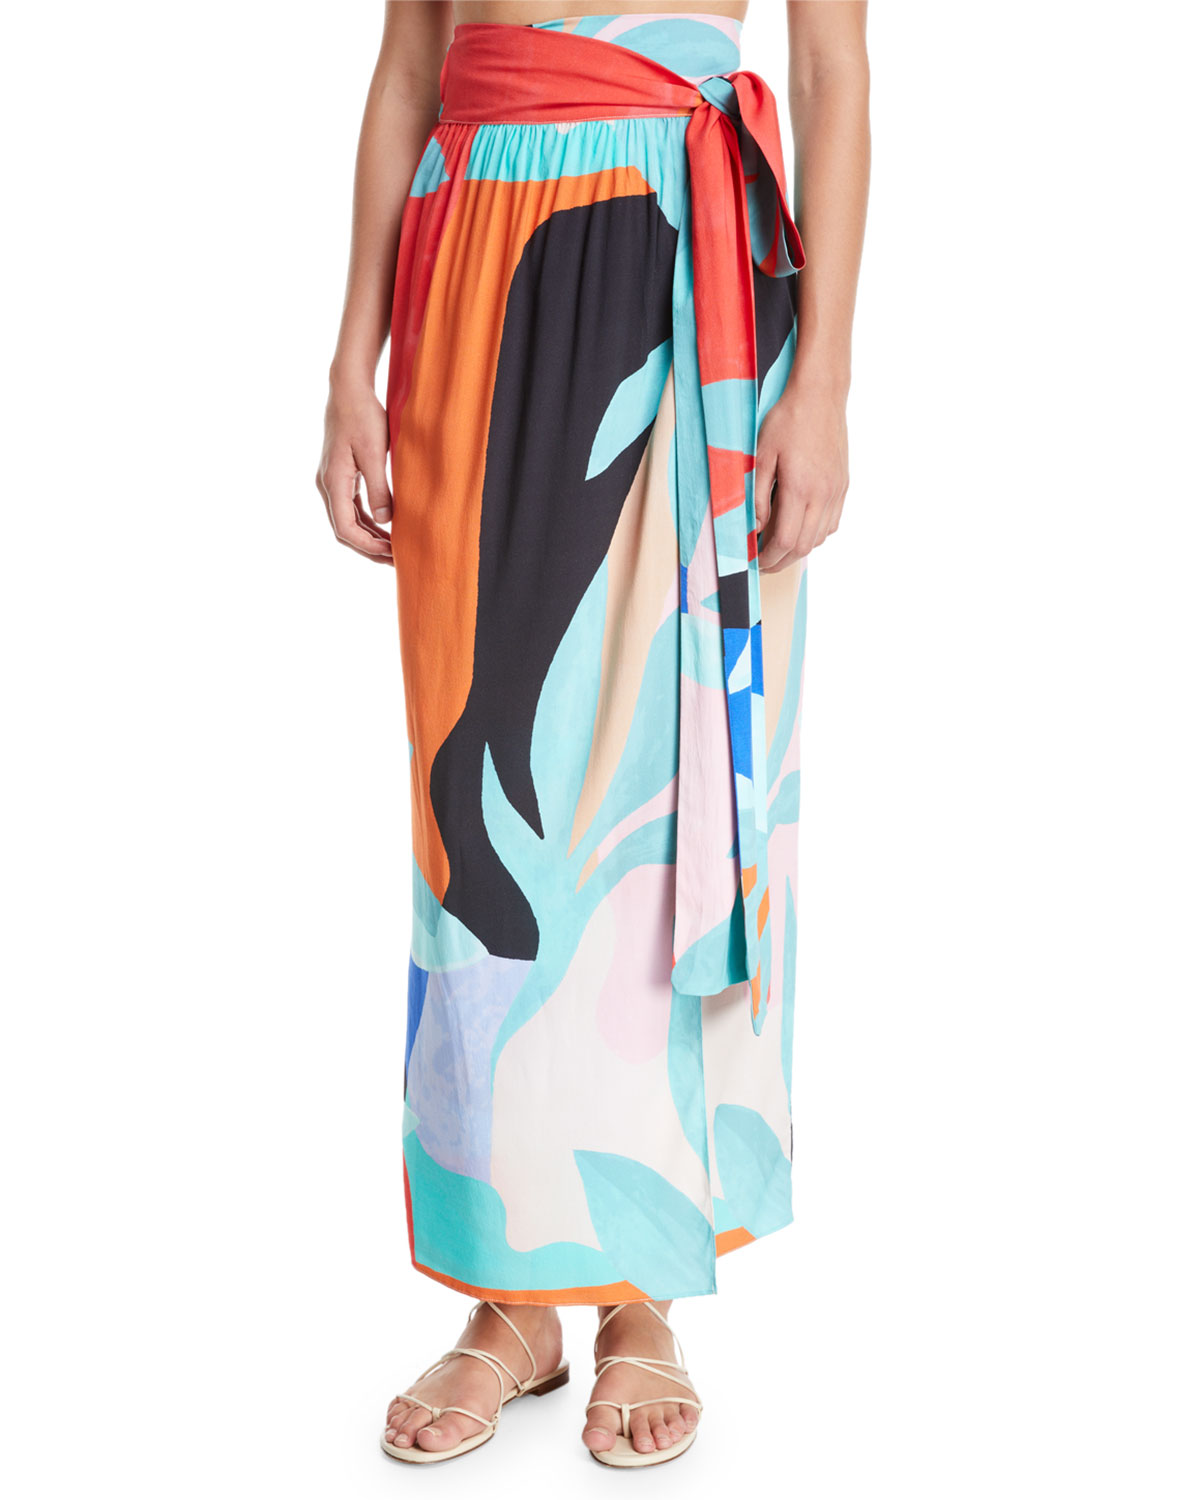 Plus Size Cora Convertible Coverup Wrap Maxi Skirt/Dress